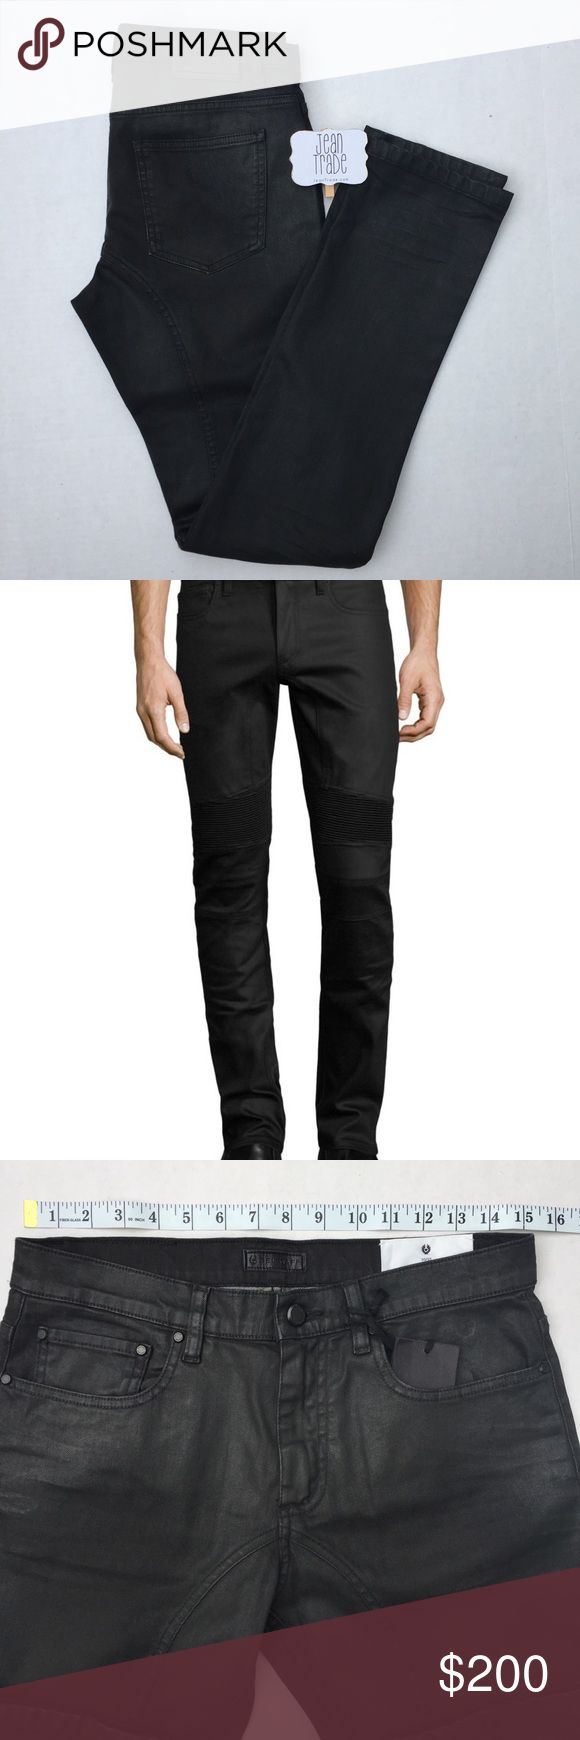 30x33 Belstaff Eastham Slim Fit Moto Jeans Black Belstaff Eastham Slim Fit Moto Jeans Black. Retail:$350  This pair of black Eastham jeans been made in Italy from hard-wearing stretch denim and finished with signature ribbed panels just above the knee. Available in a slim fit and low rise, the pair is sure to become a perennial wardrobe staple.     Zip & button fly • Corrugated panels on knee • 5 pockets • Made in Italy Belstaff Jeans Slim